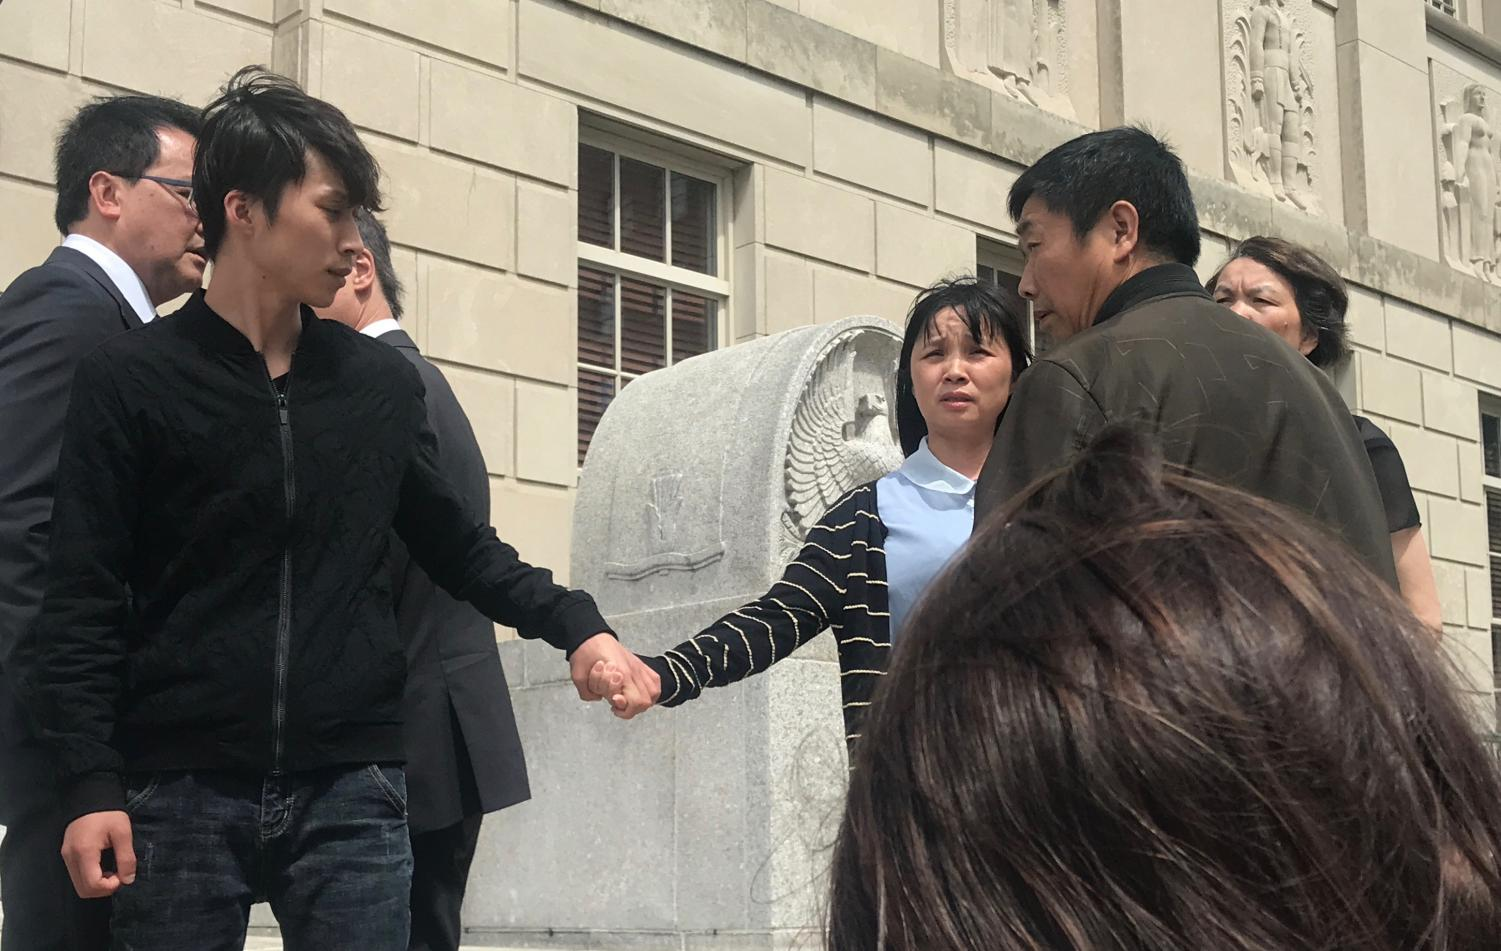 Xinyang Zhang, Yingying's brother (right), leads their mother Lifeng Ye (center) after the family addresses the public. Ronggao Zhang, Yingying and Xinyang's father (left), made the statement. Brendt Christensen was found guilty by the jury on June 24.